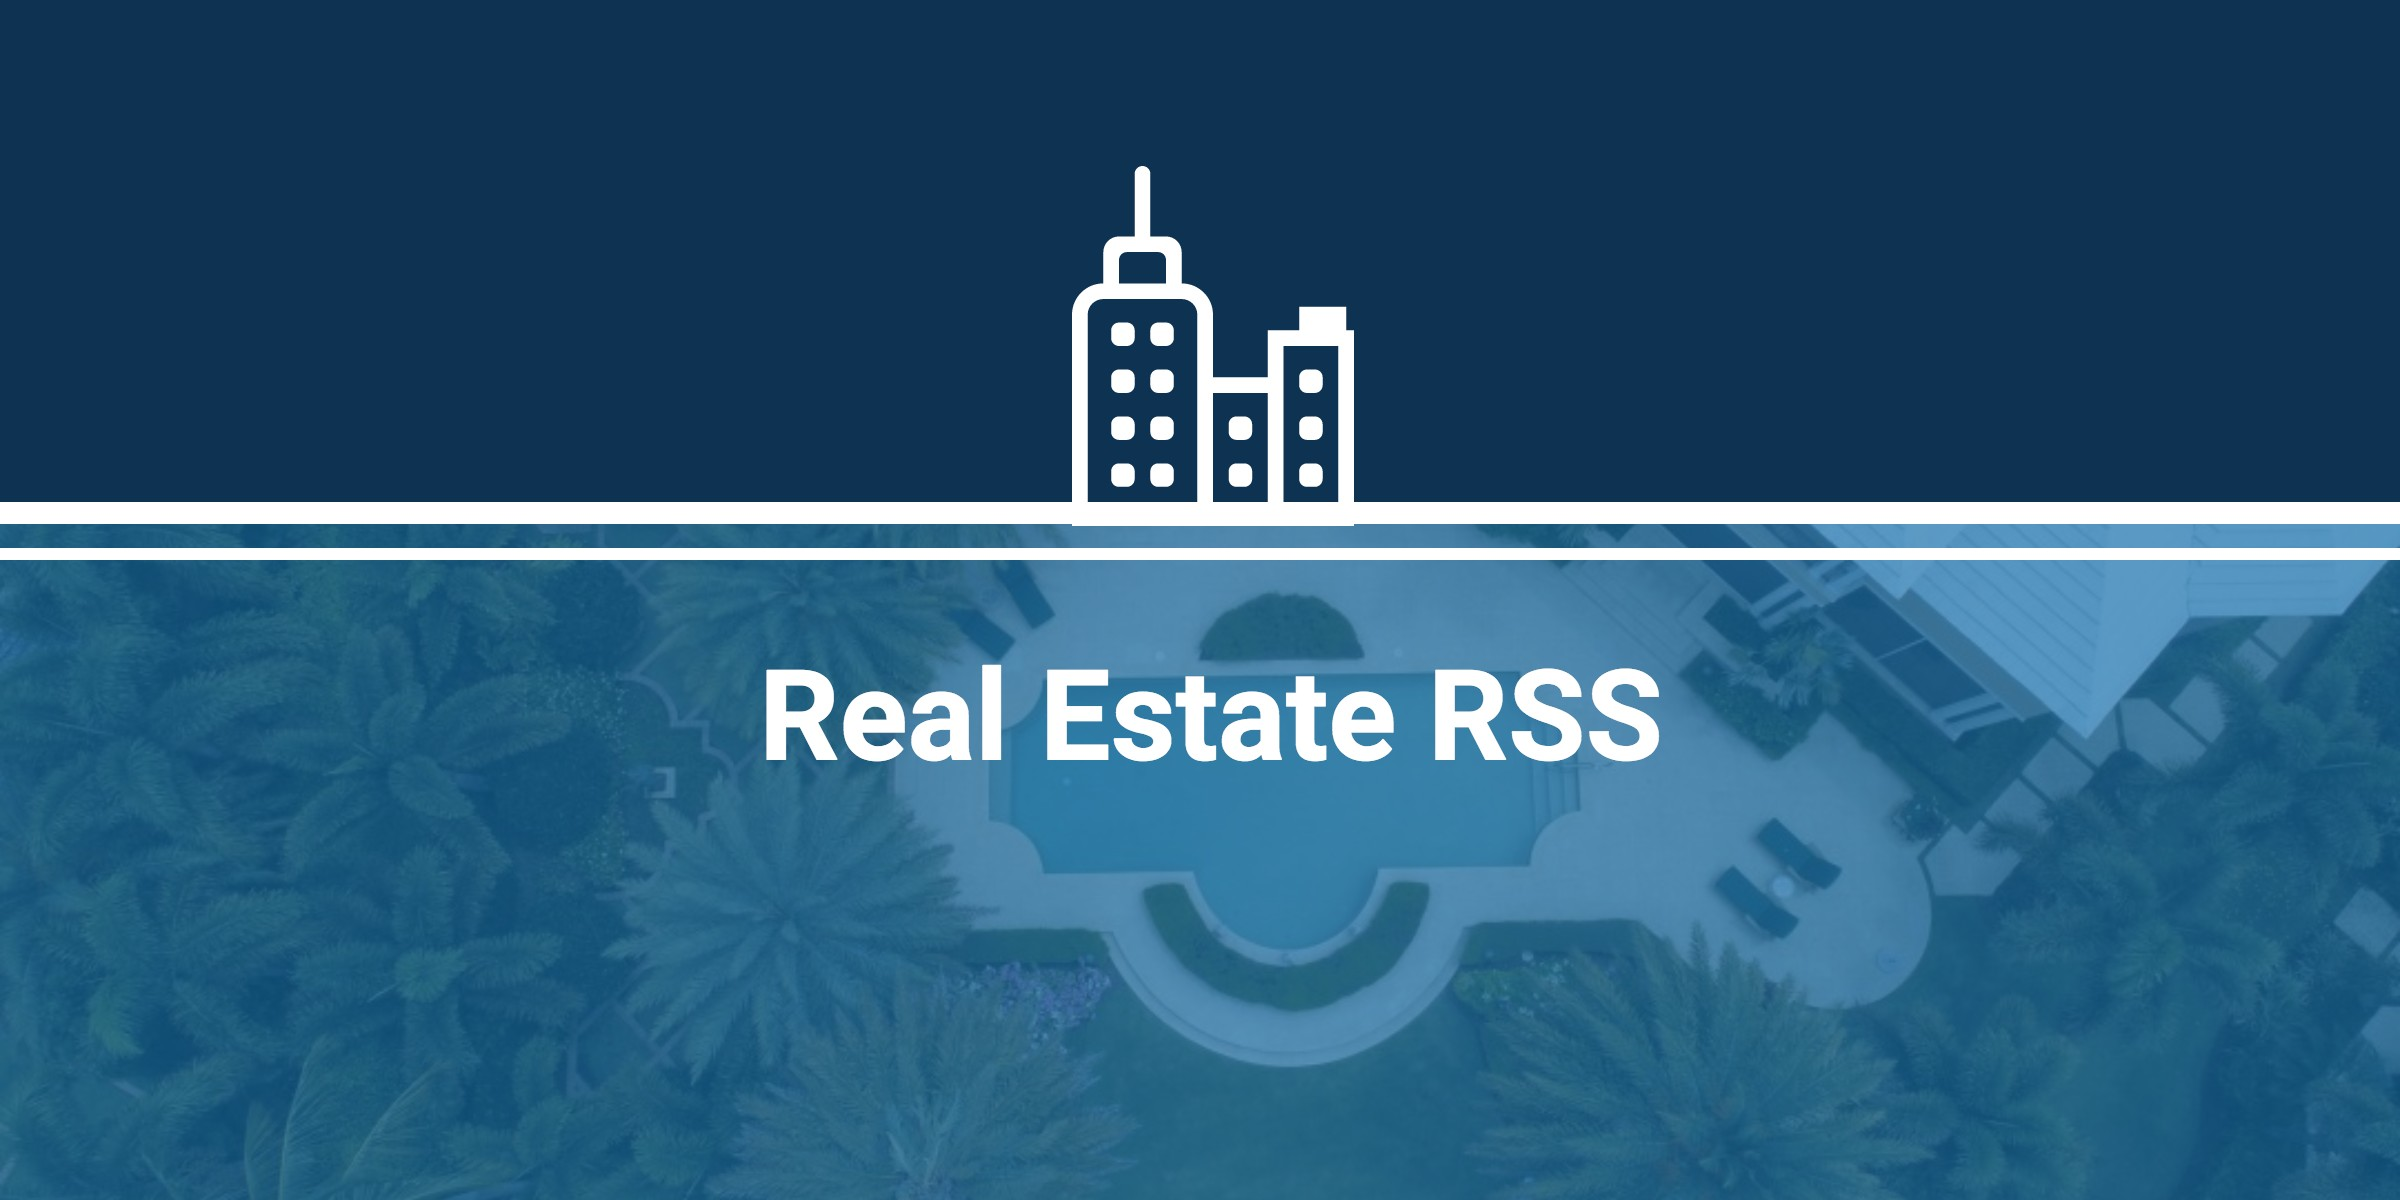 Real Estate RSS